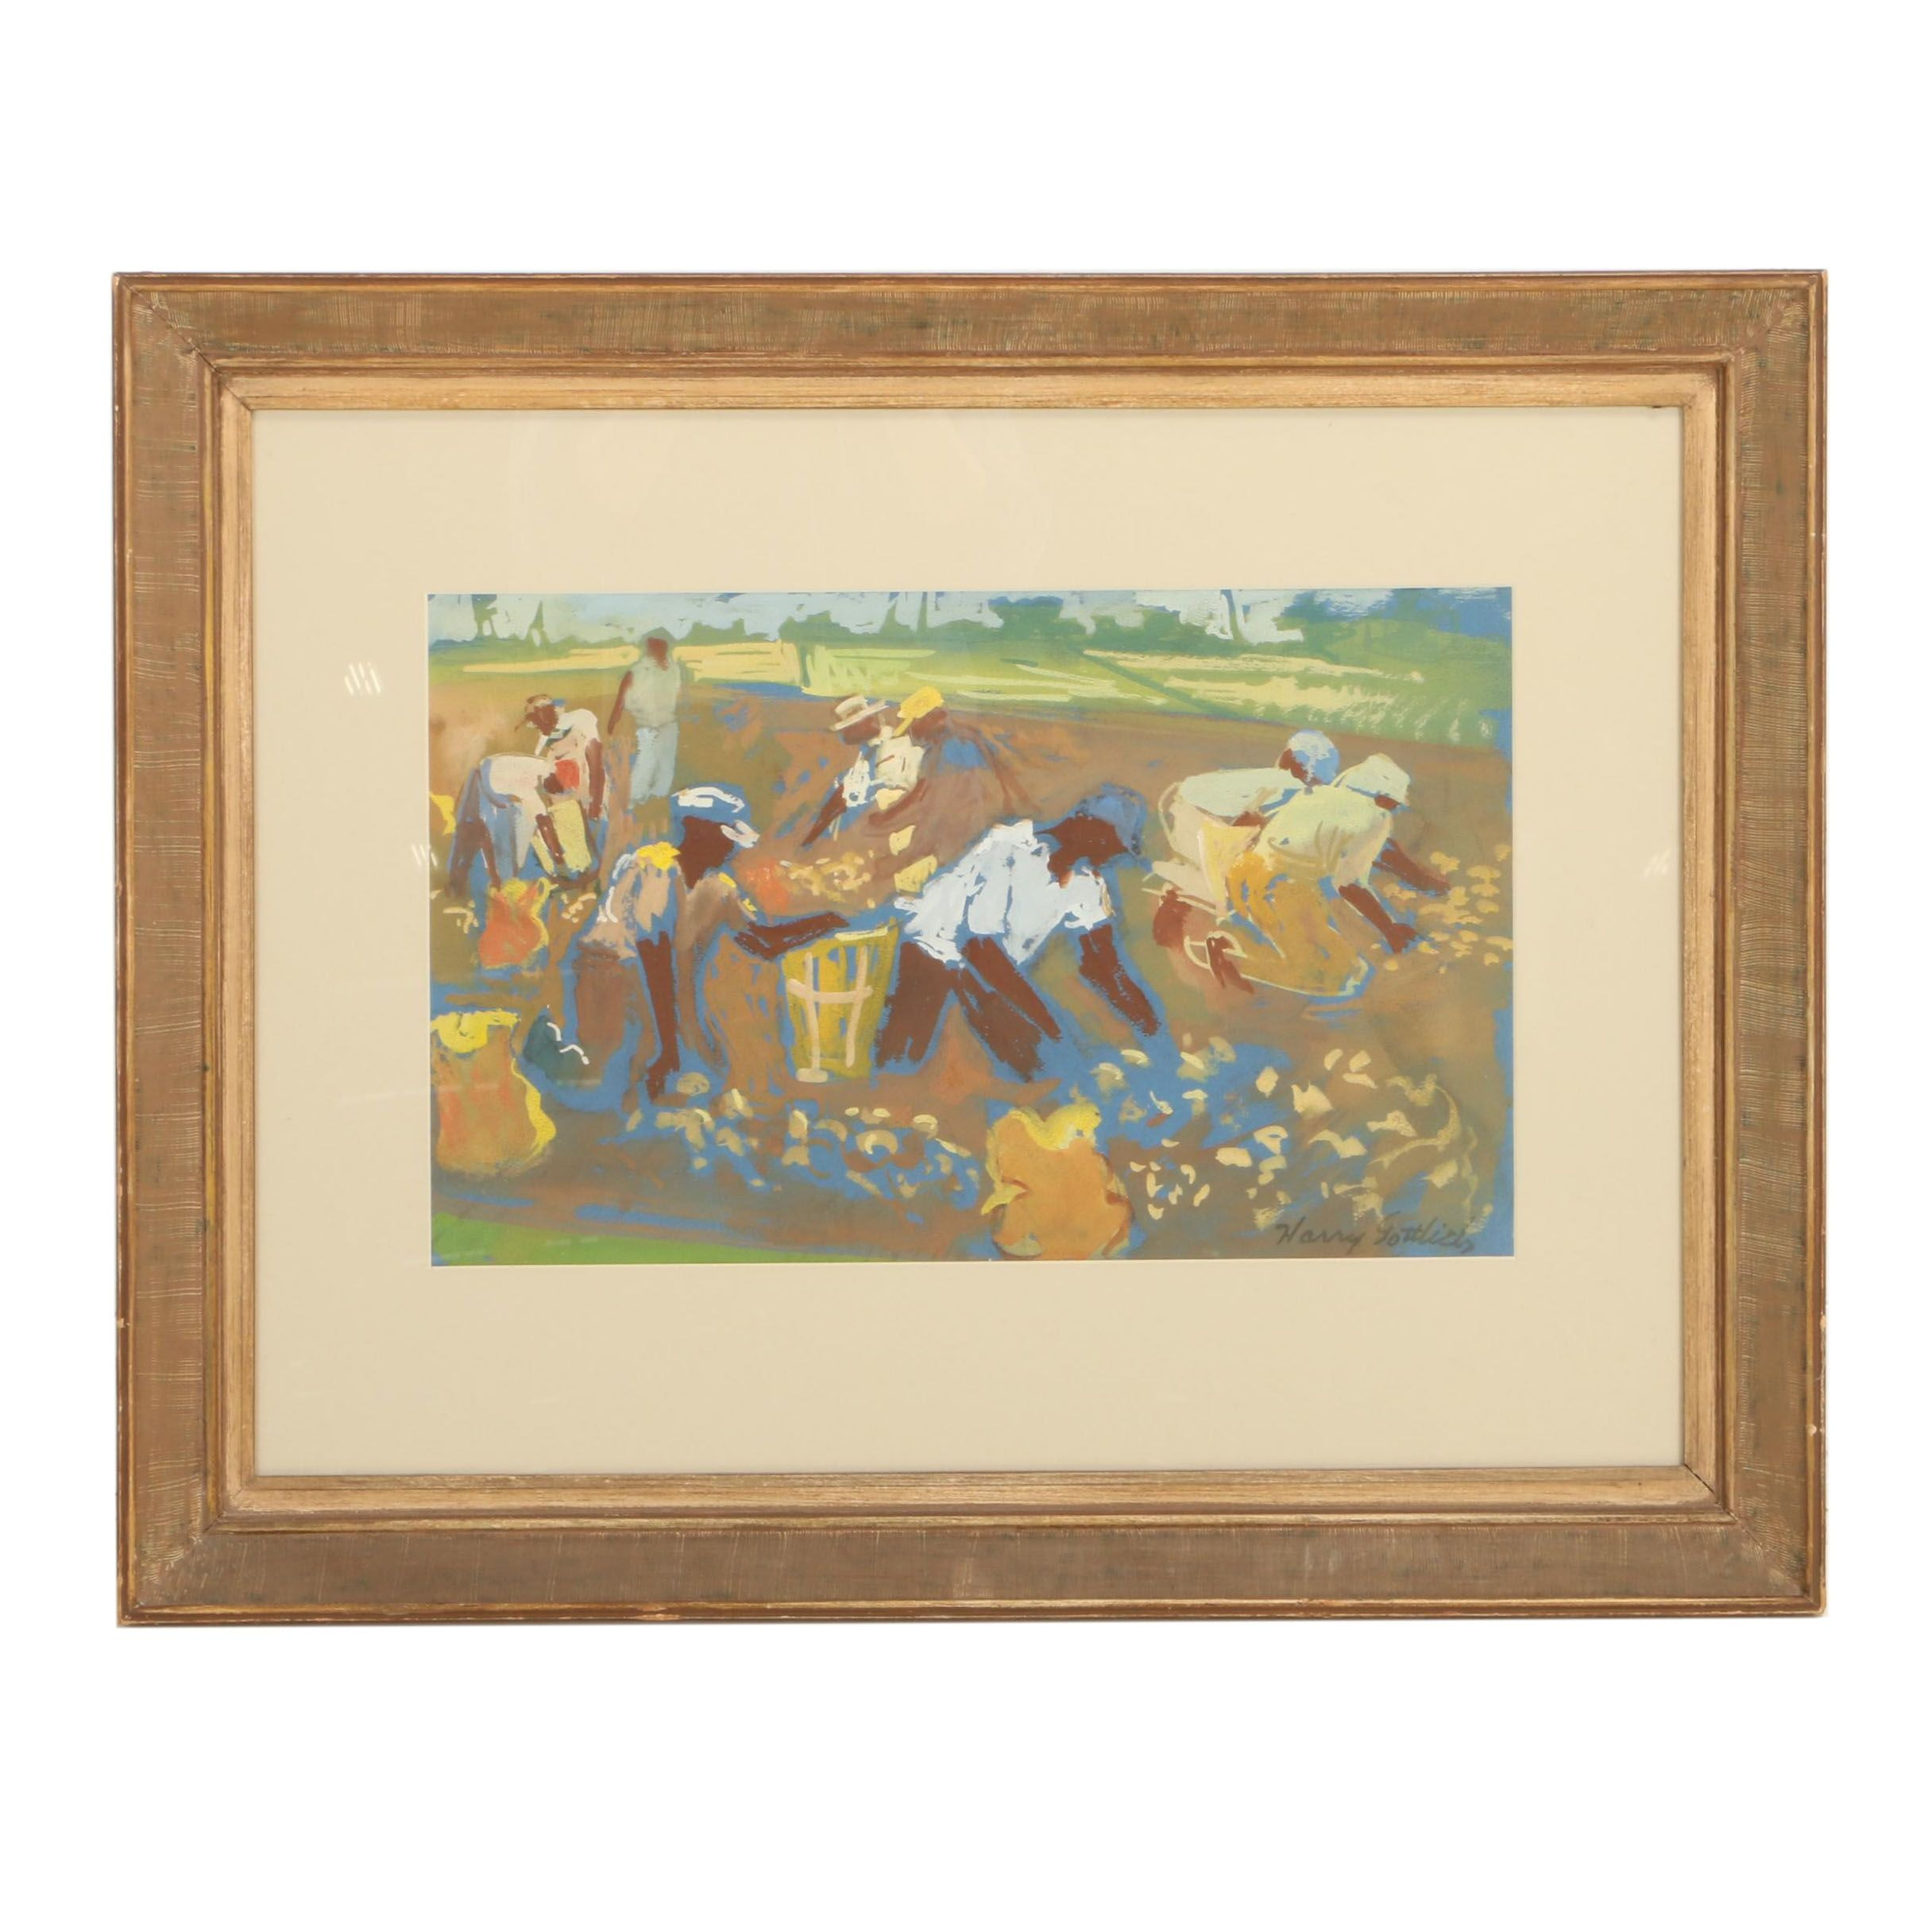 Harry Gottlieb Gouache and Watercolor Painting of Harvesters